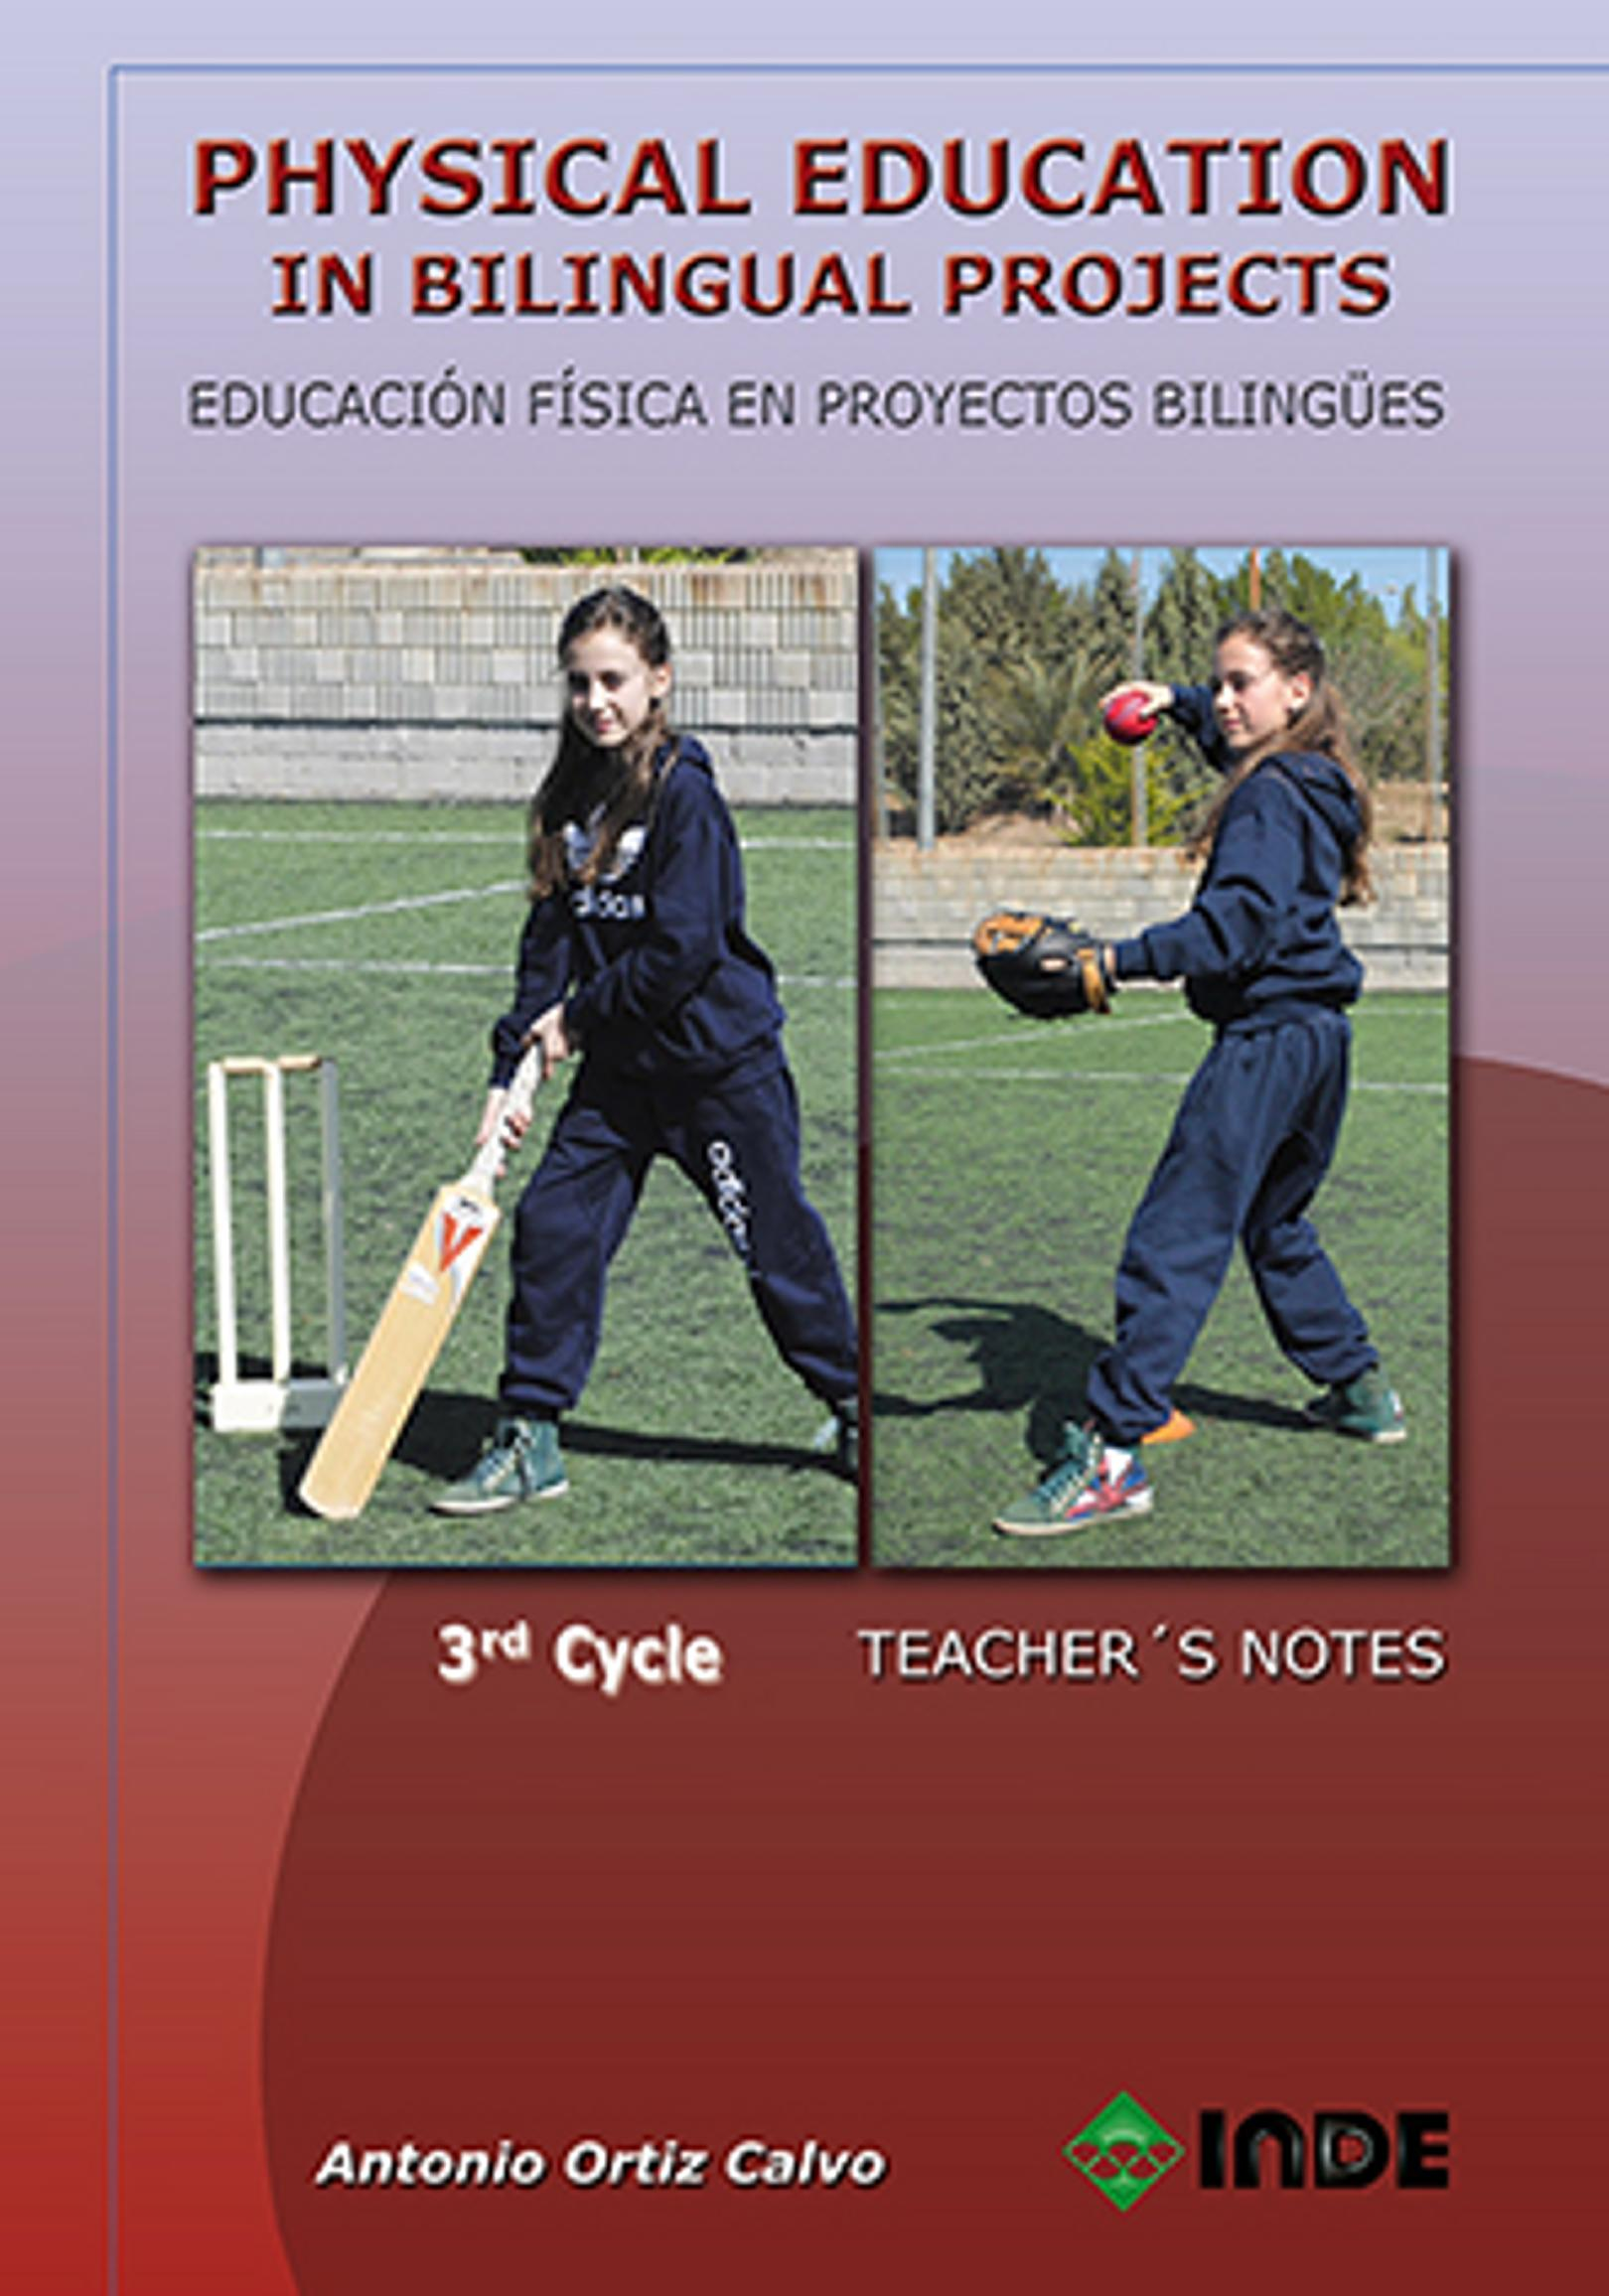 PHYSICAL EDUCATION IN BILINGUAL PROJECTS 3rd Cycle Teacher´s Notes